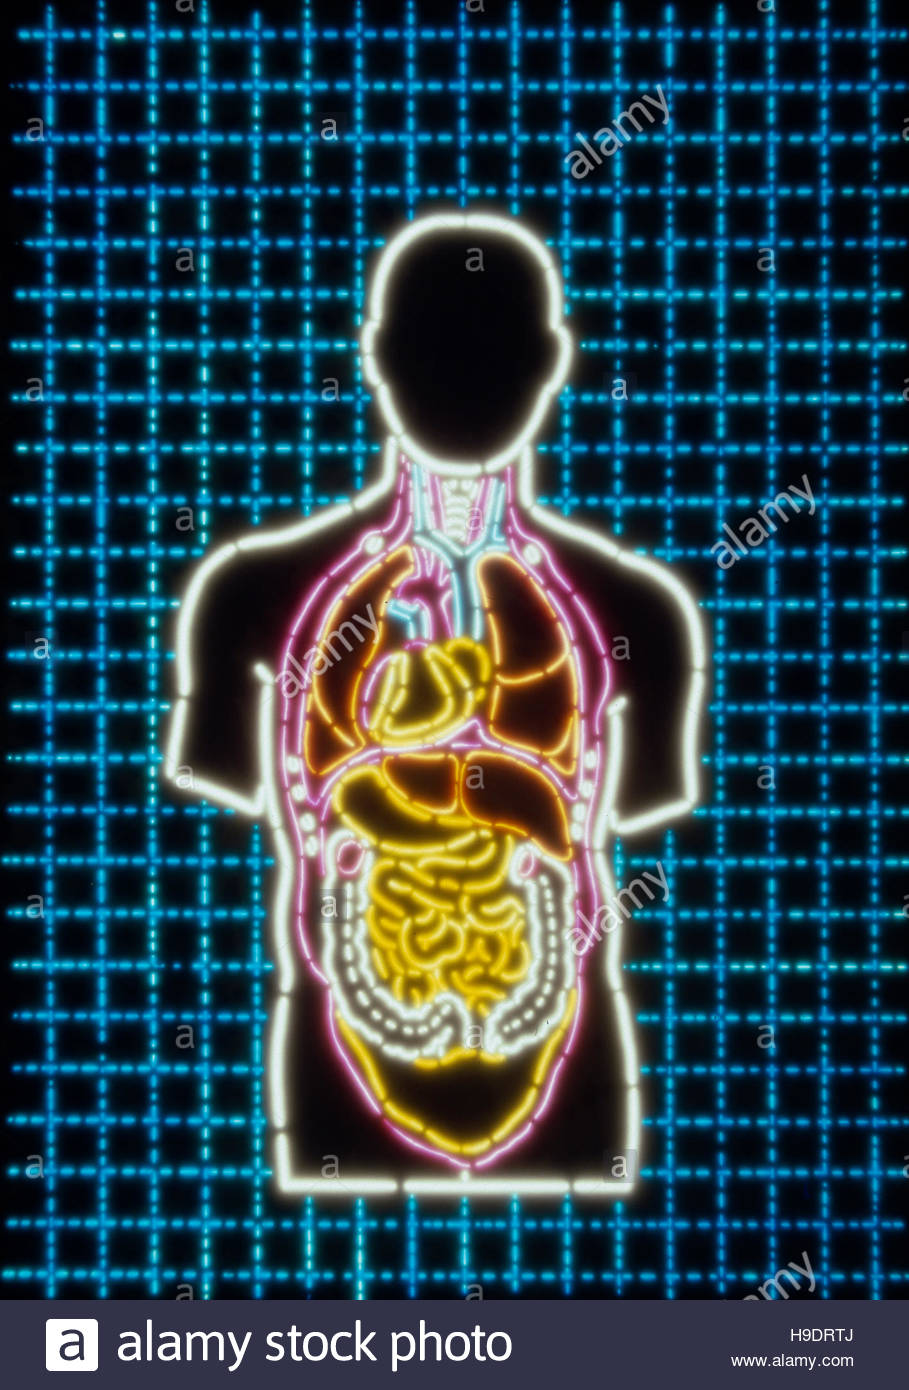 Photo-illustration of a Human Body with internal Organs - Stock Image